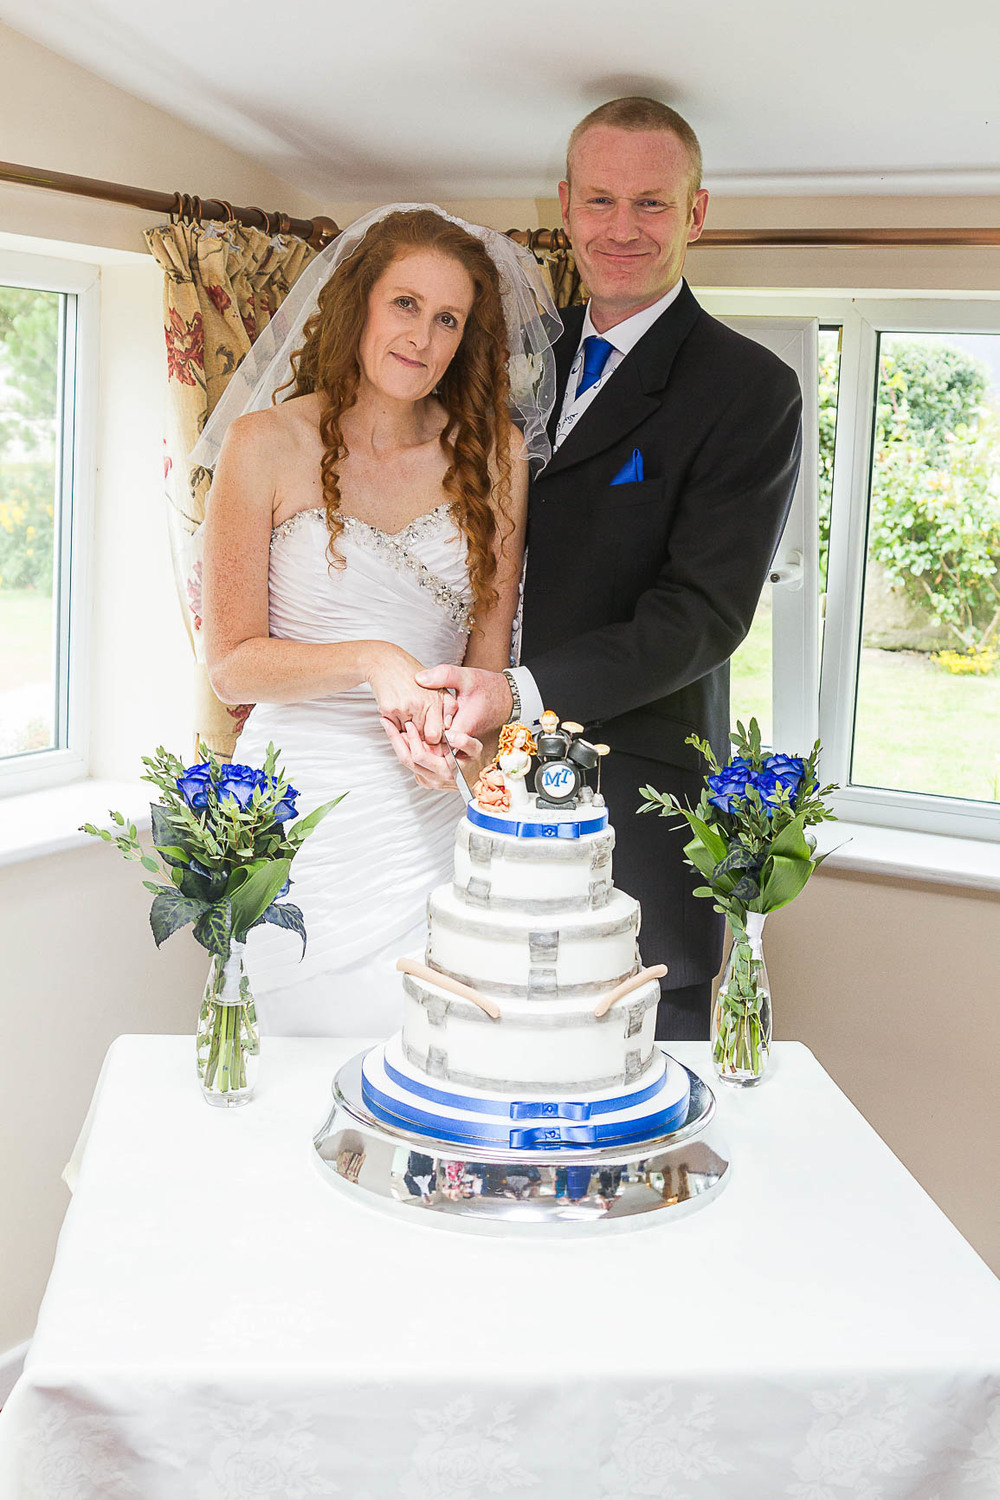 Kelly & Tony_Wedding_Windy Harbour Farm_July2015_SJW Photography_Warrington-369.jpg